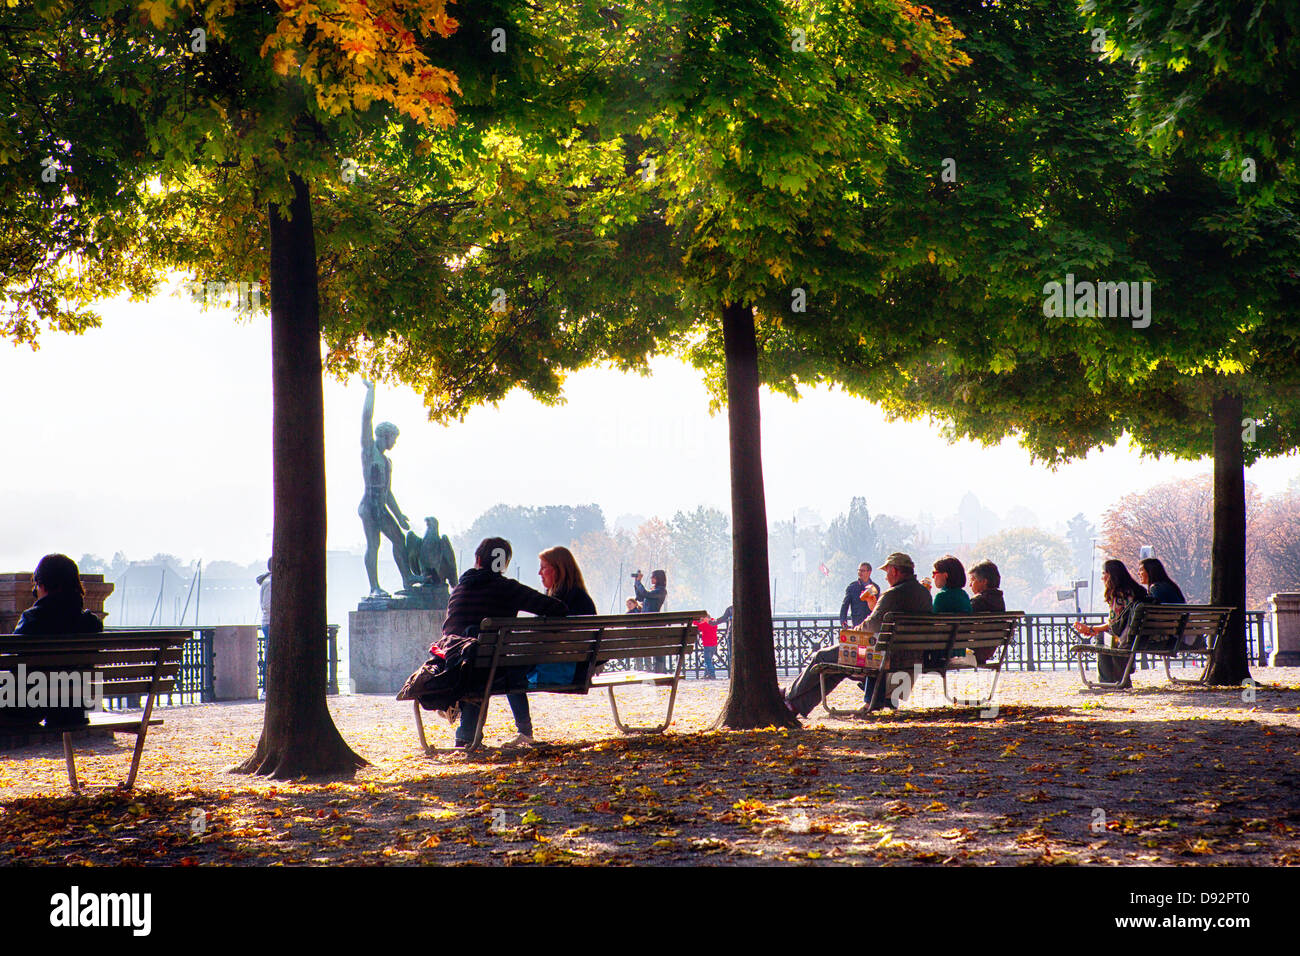 People Relaxing in a Park, Bürkliplatz, Zurich, Canton of Zurich, Switzerland - Stock Image